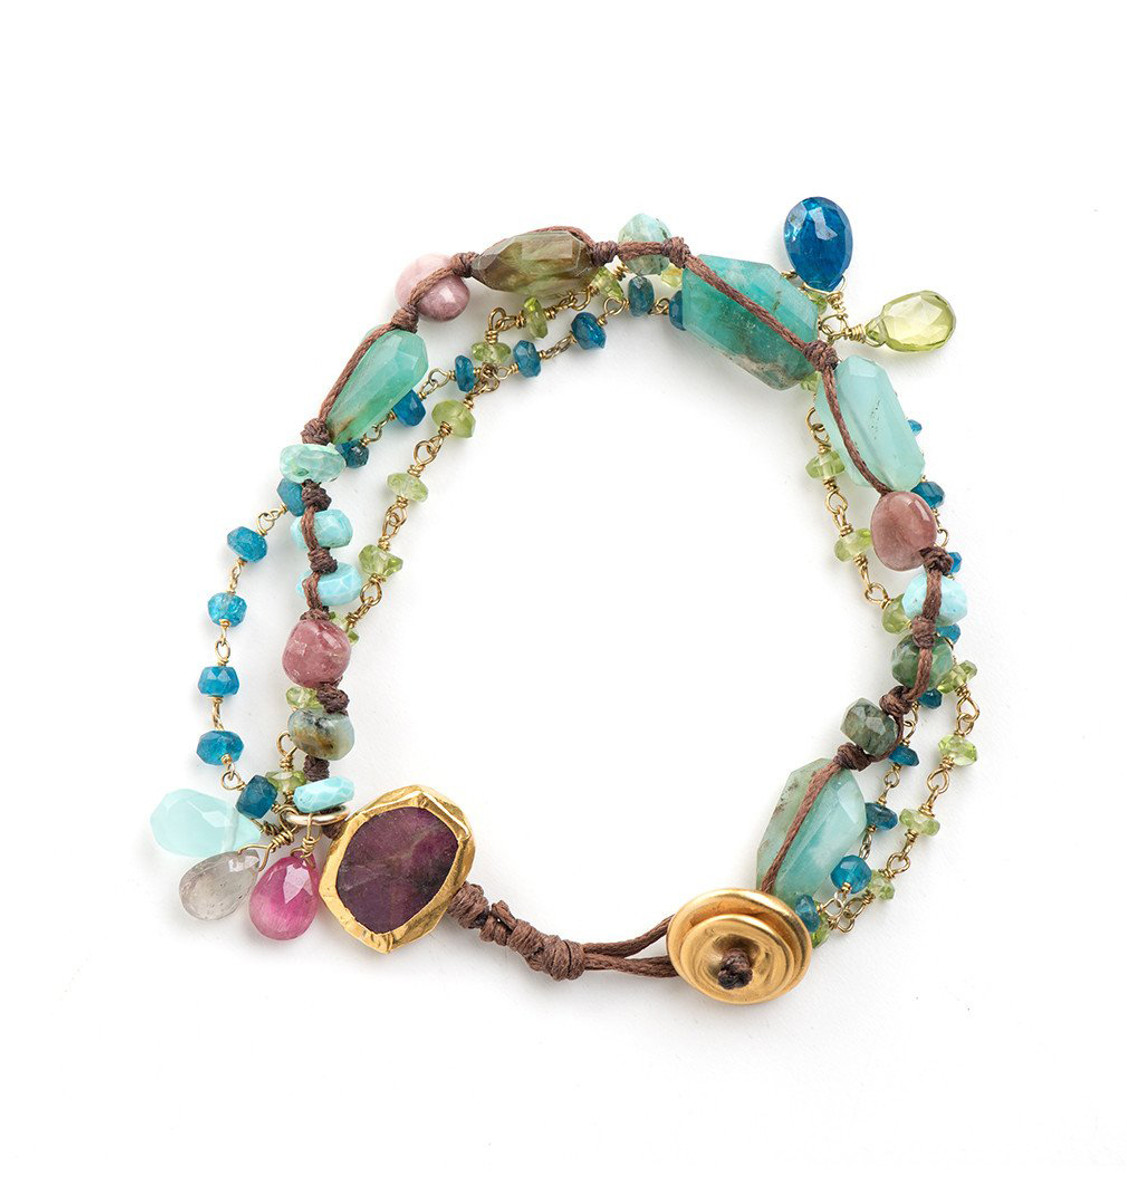 Joyful Bracelet by Nava Zahavi - New Arrival